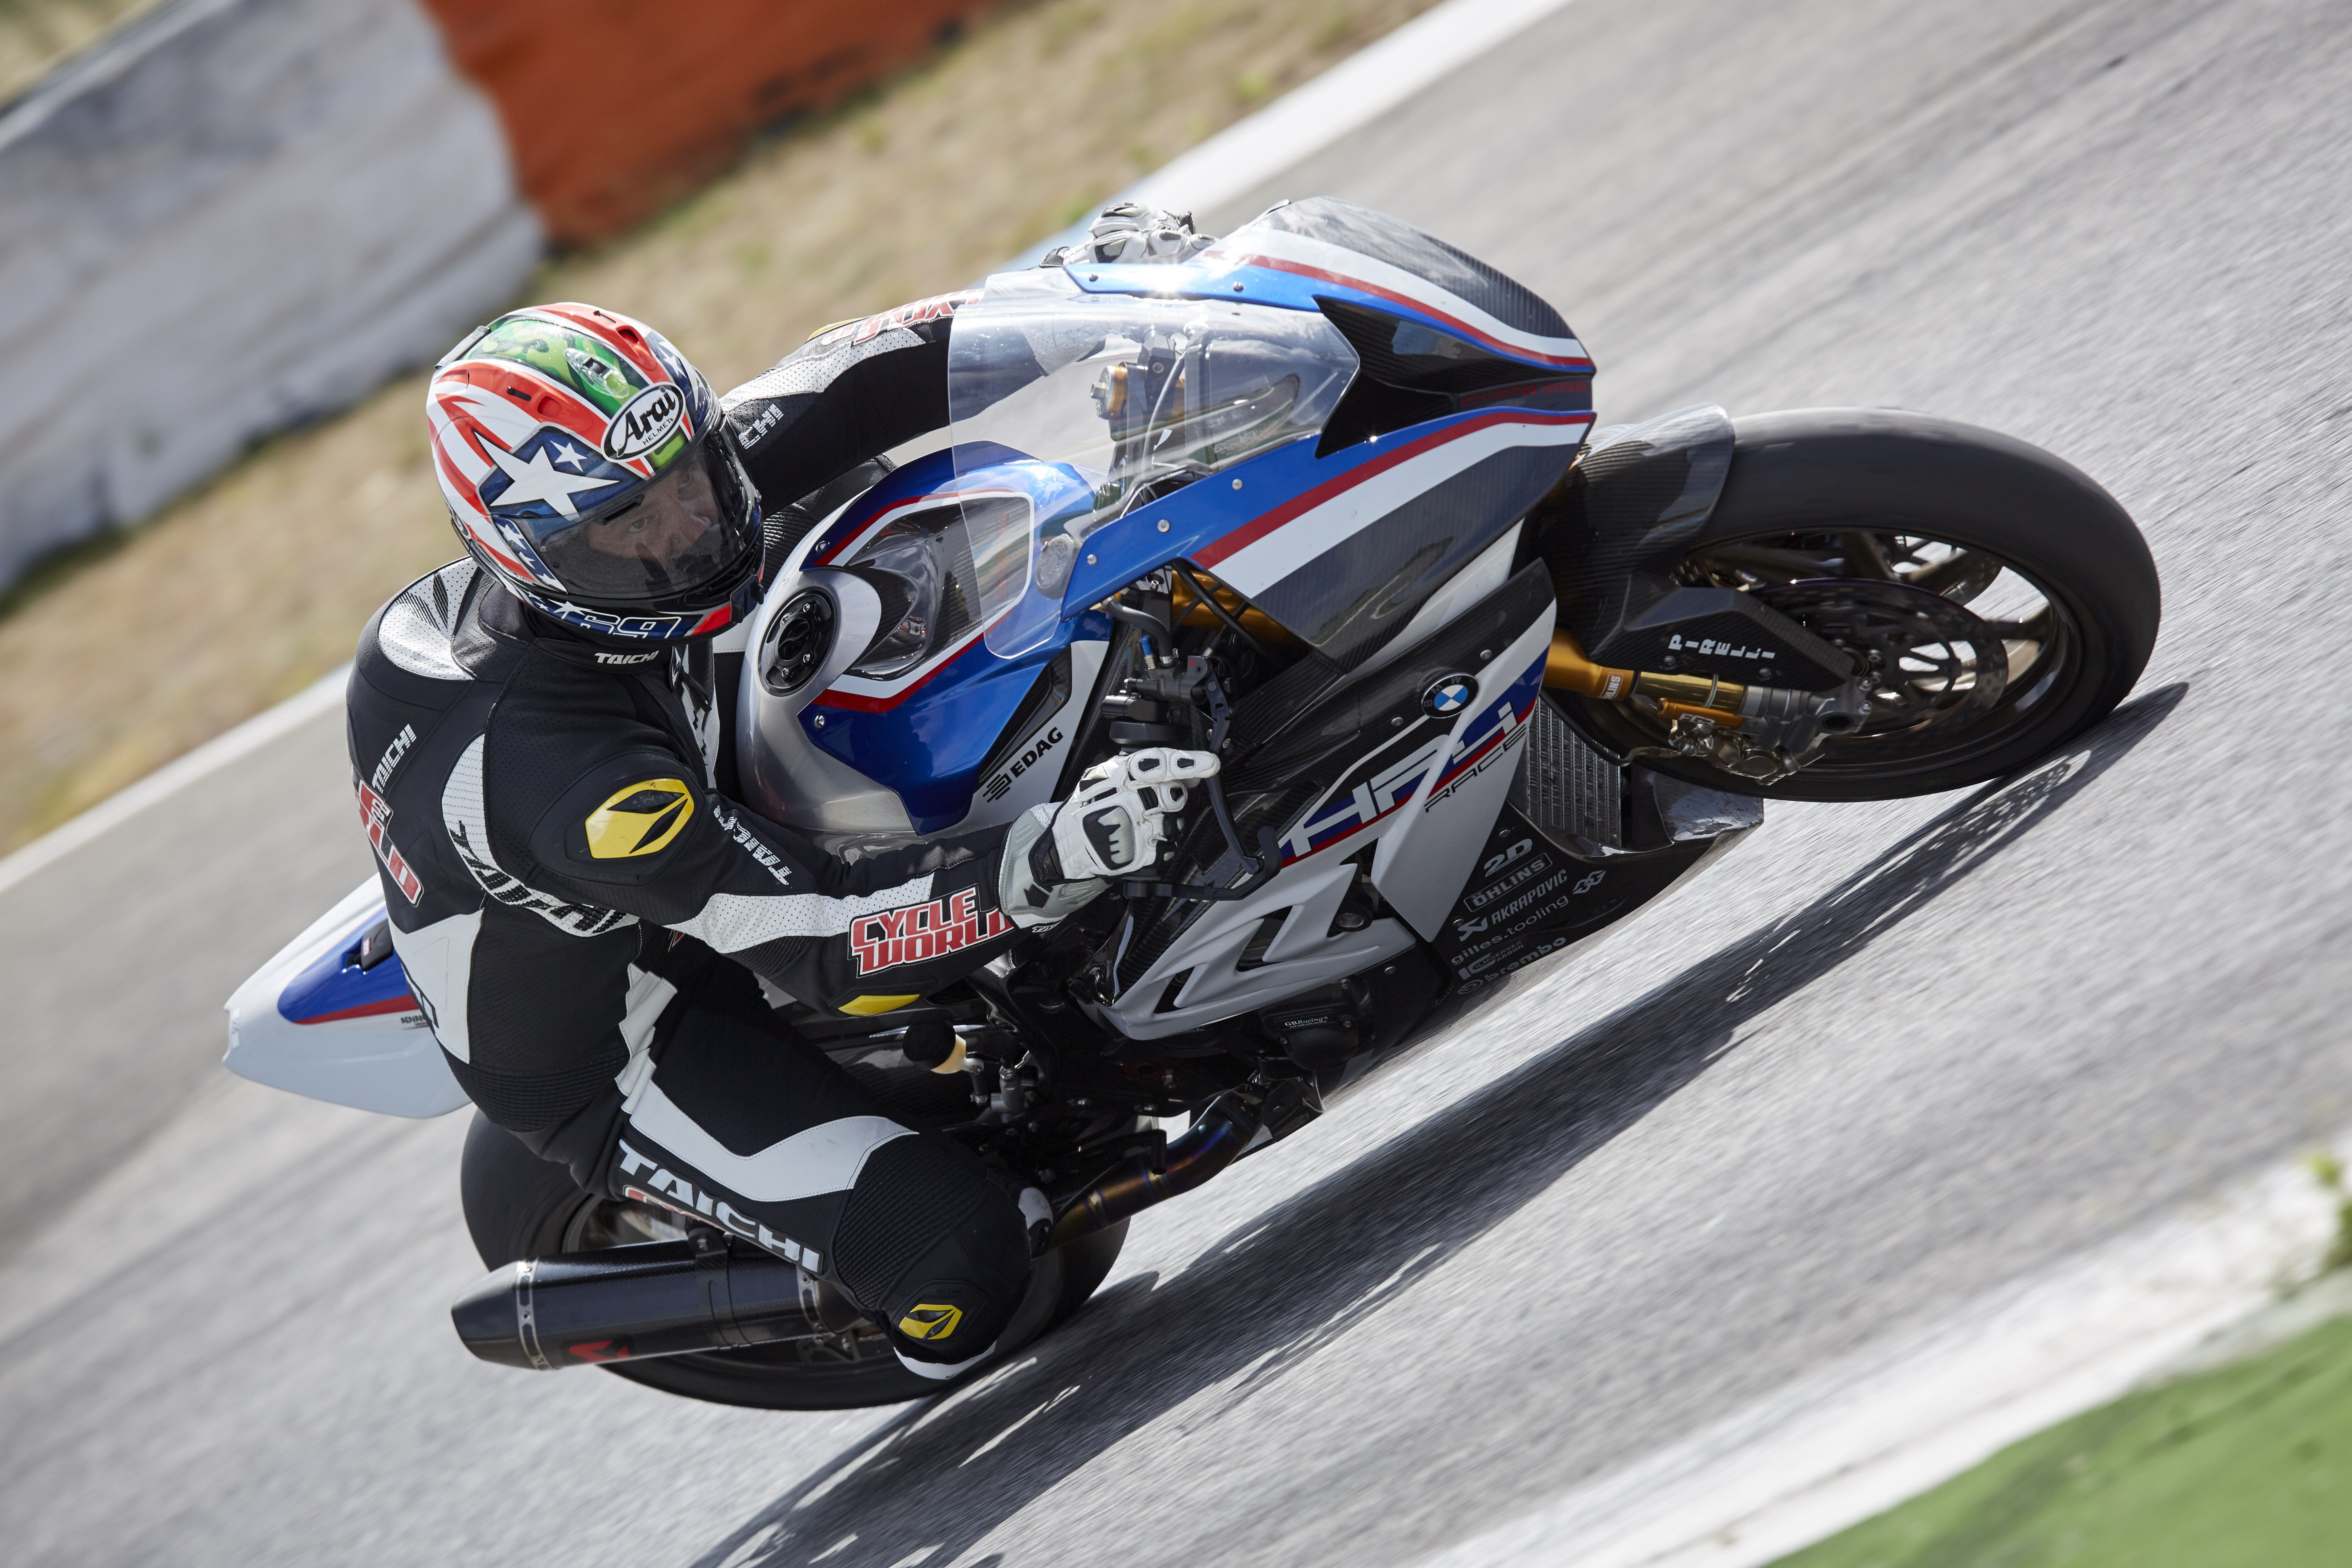 2017 BMW HP4 Race Review | Cycle World